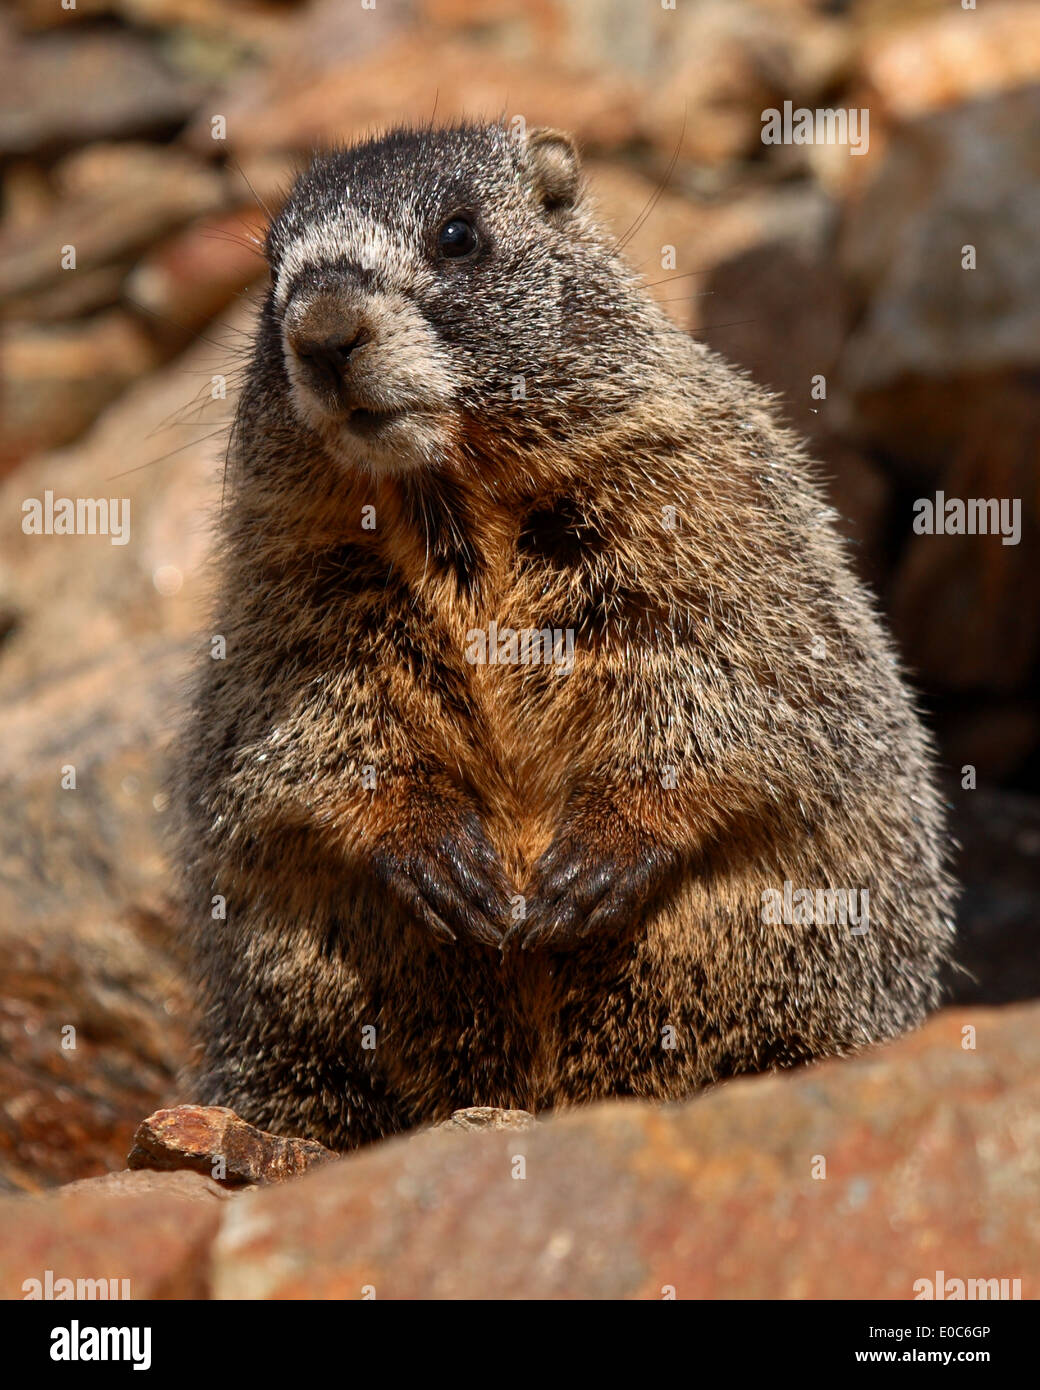 A juvenile Yellow-bellied Marmot cautious and curious. - Stock Image